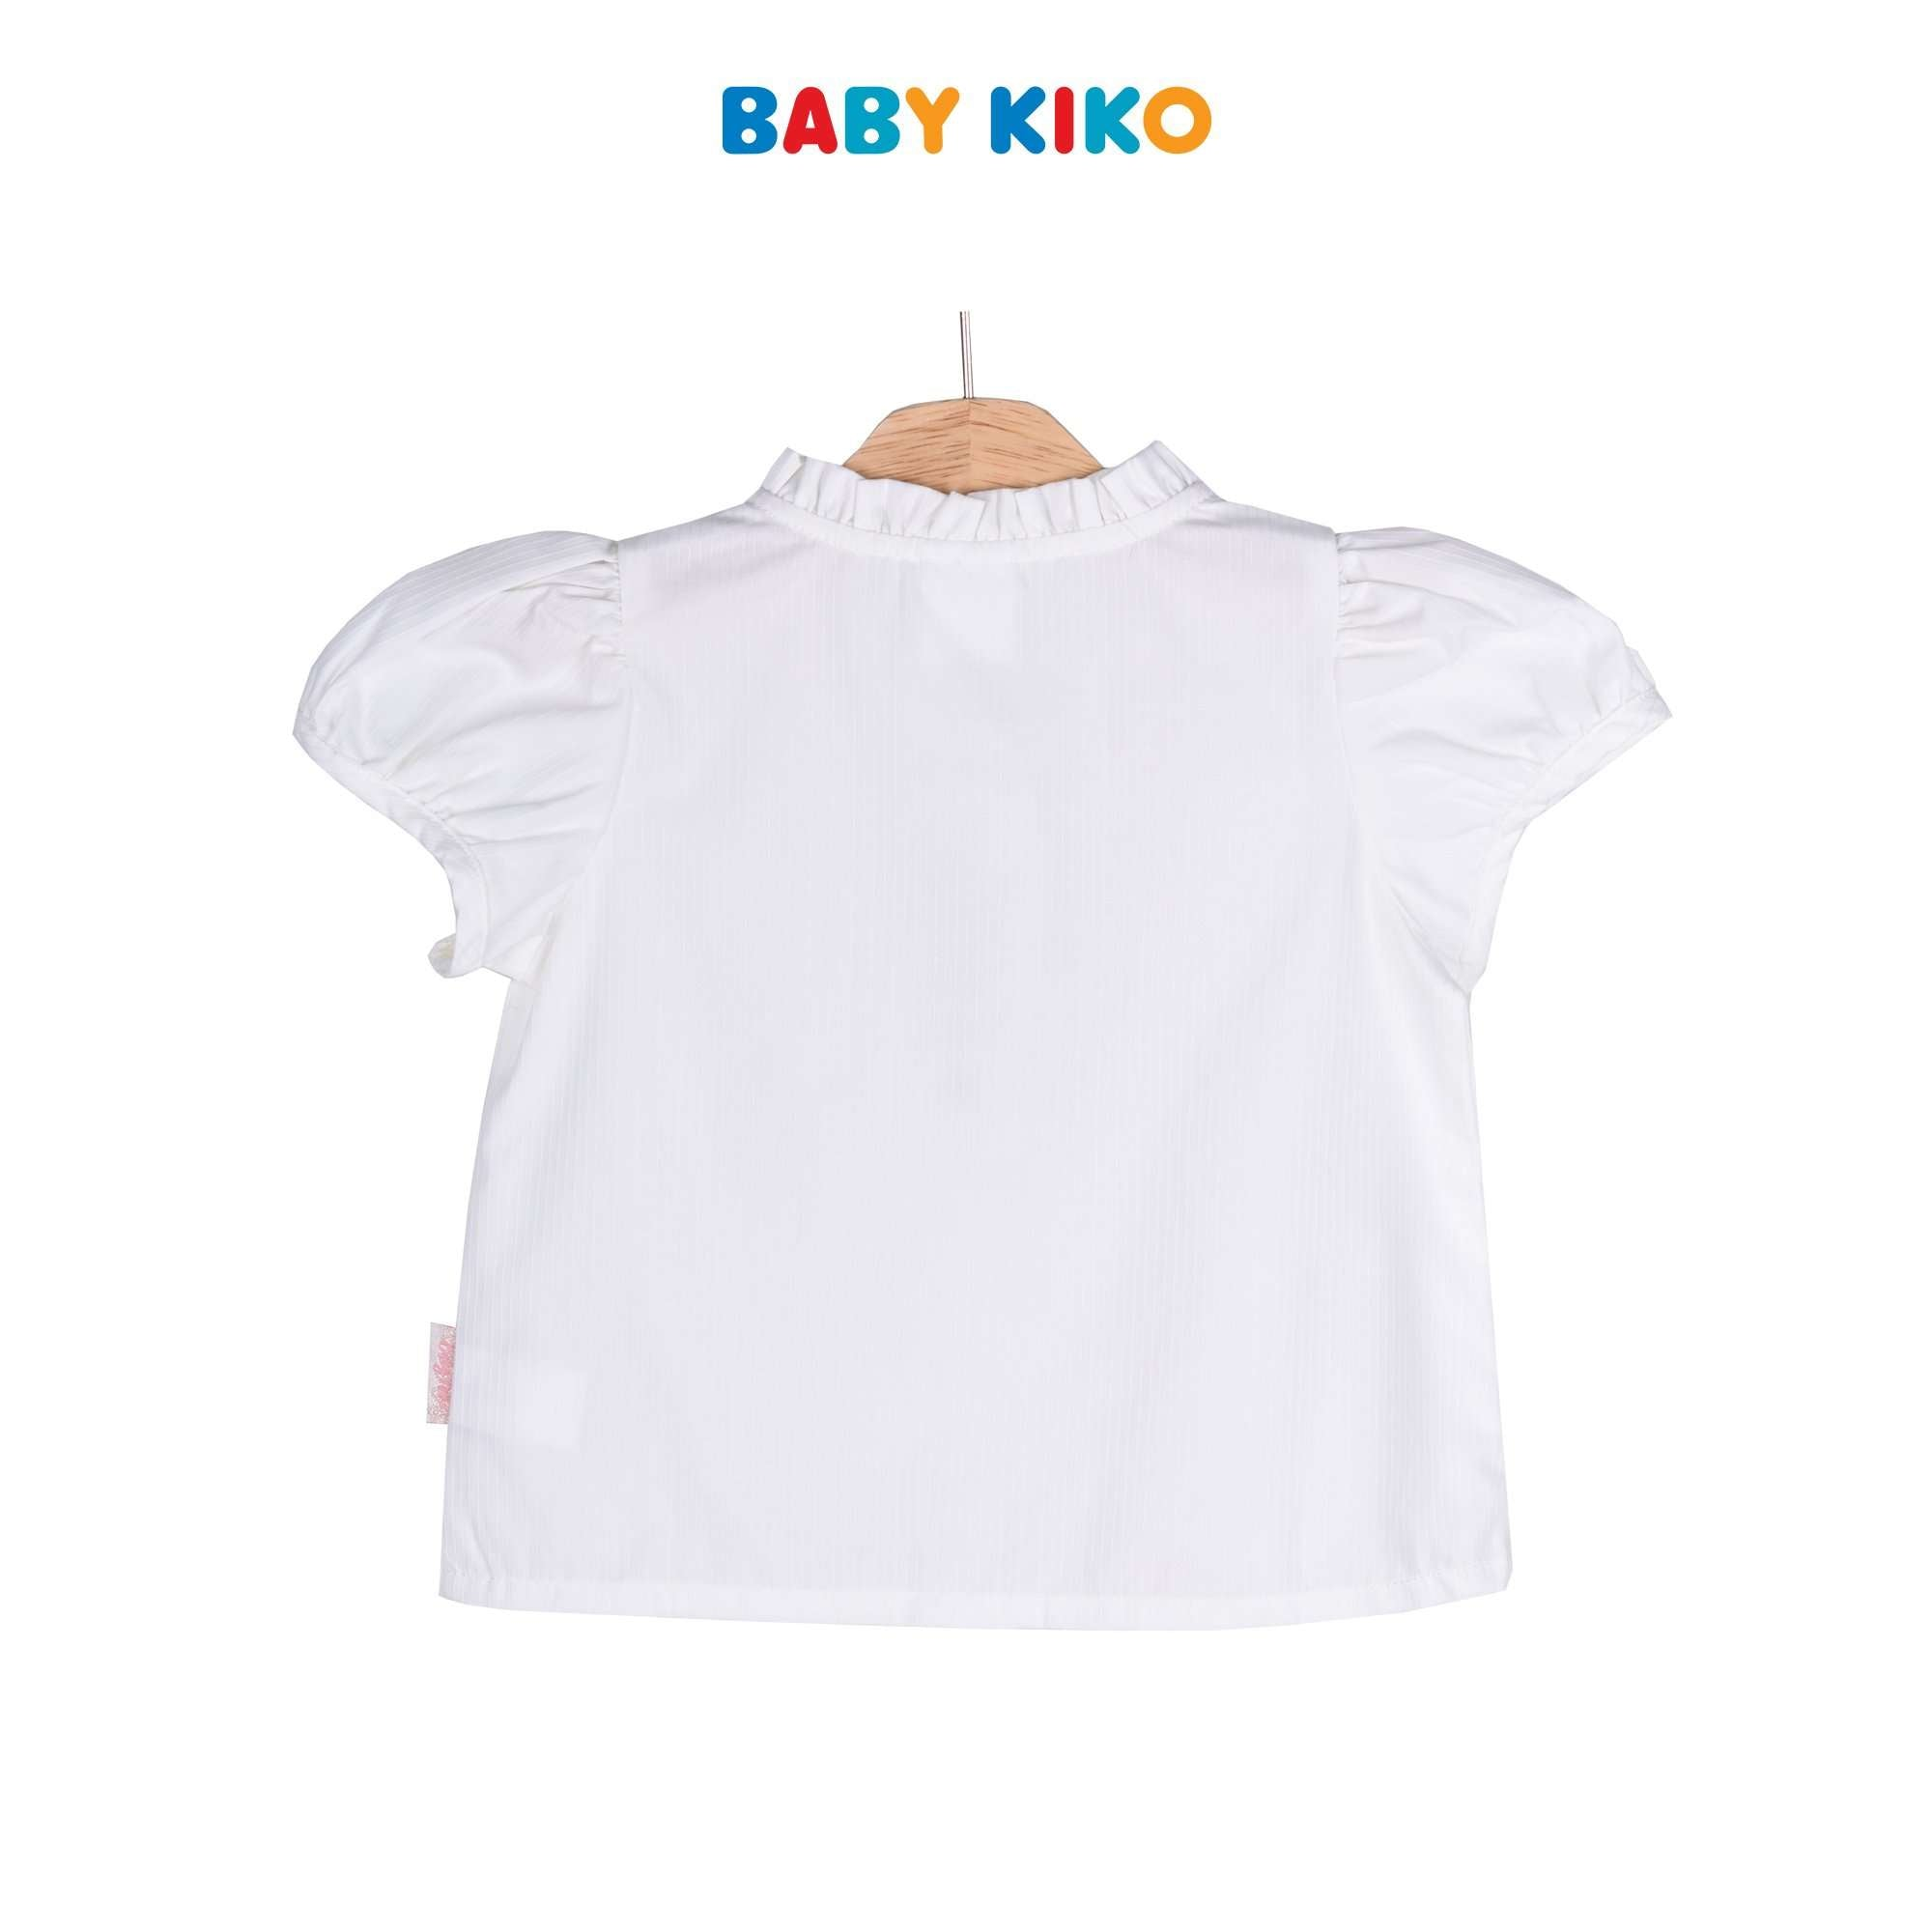 Baby KIKO Toddler Girl Short Sleeve Blouse 335132-141 : Buy Baby KIKO online at CMG.MY